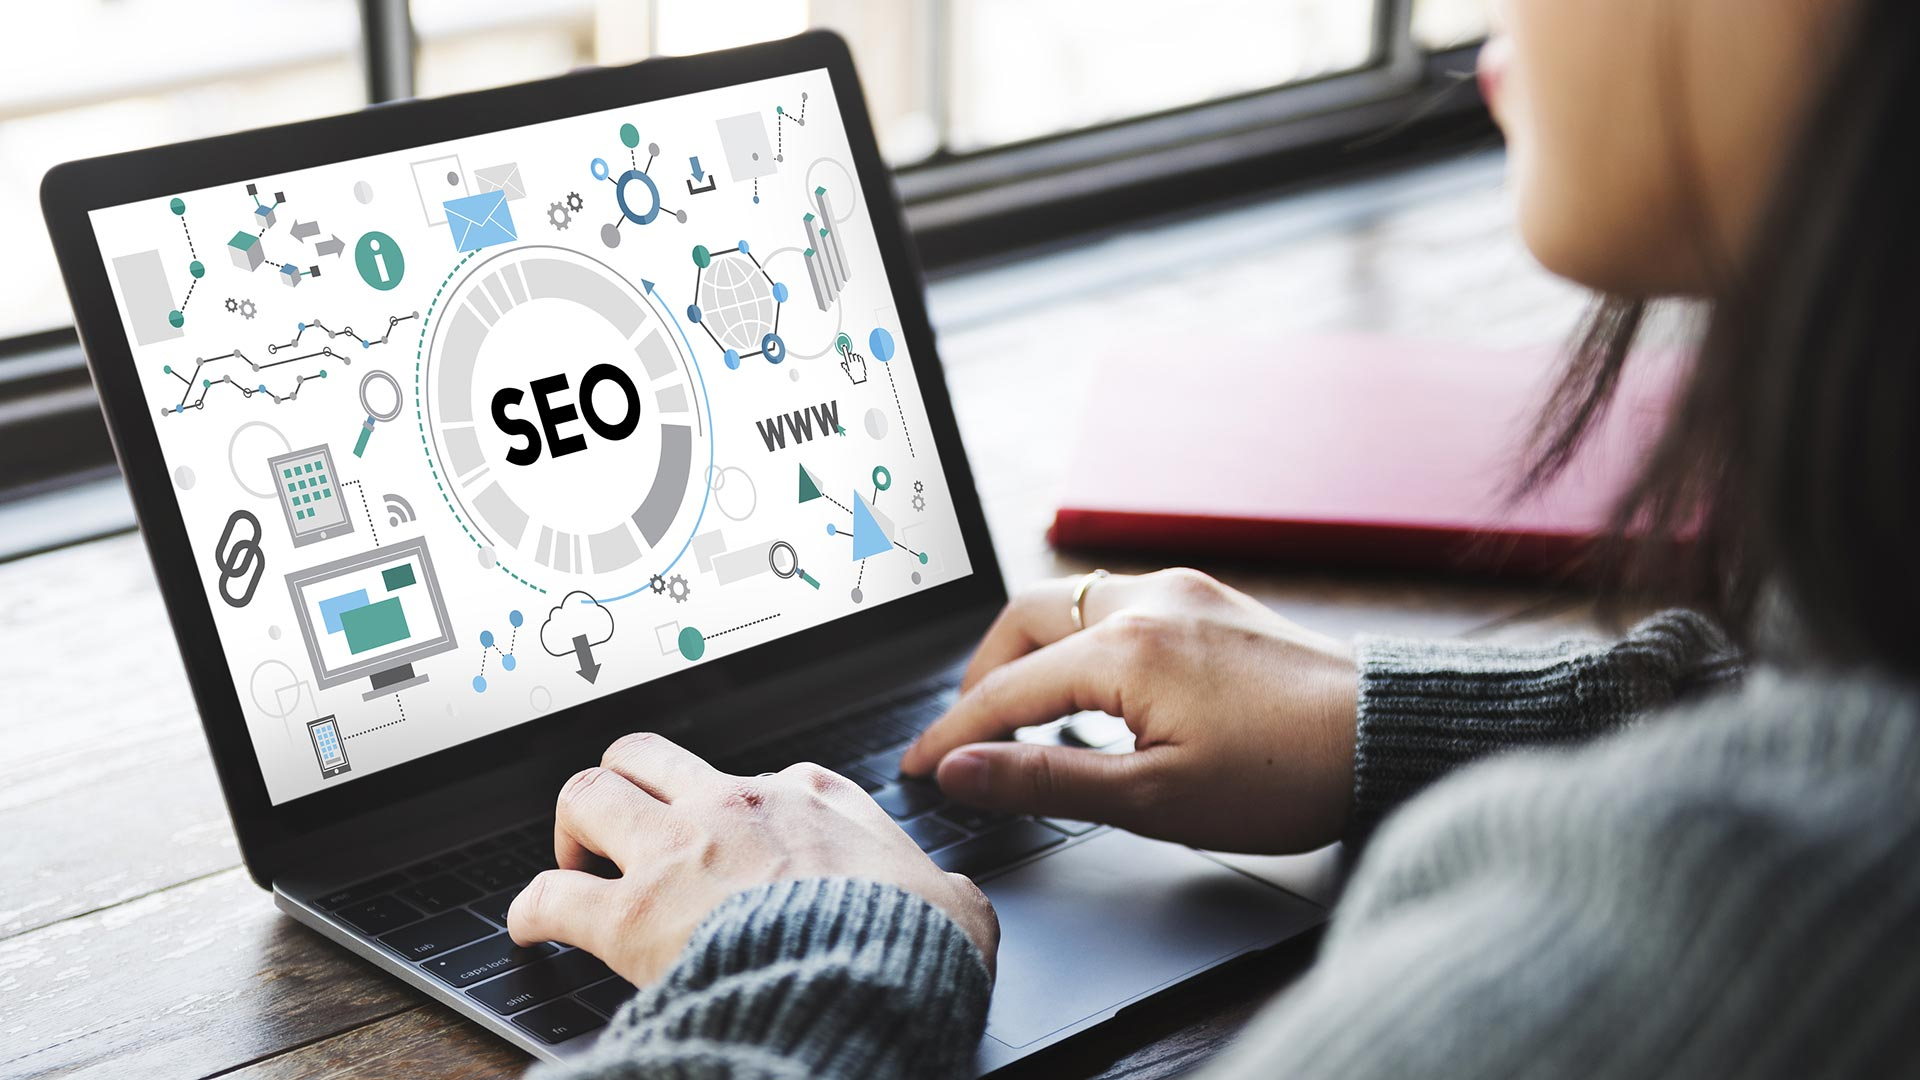 Video SEO Video production